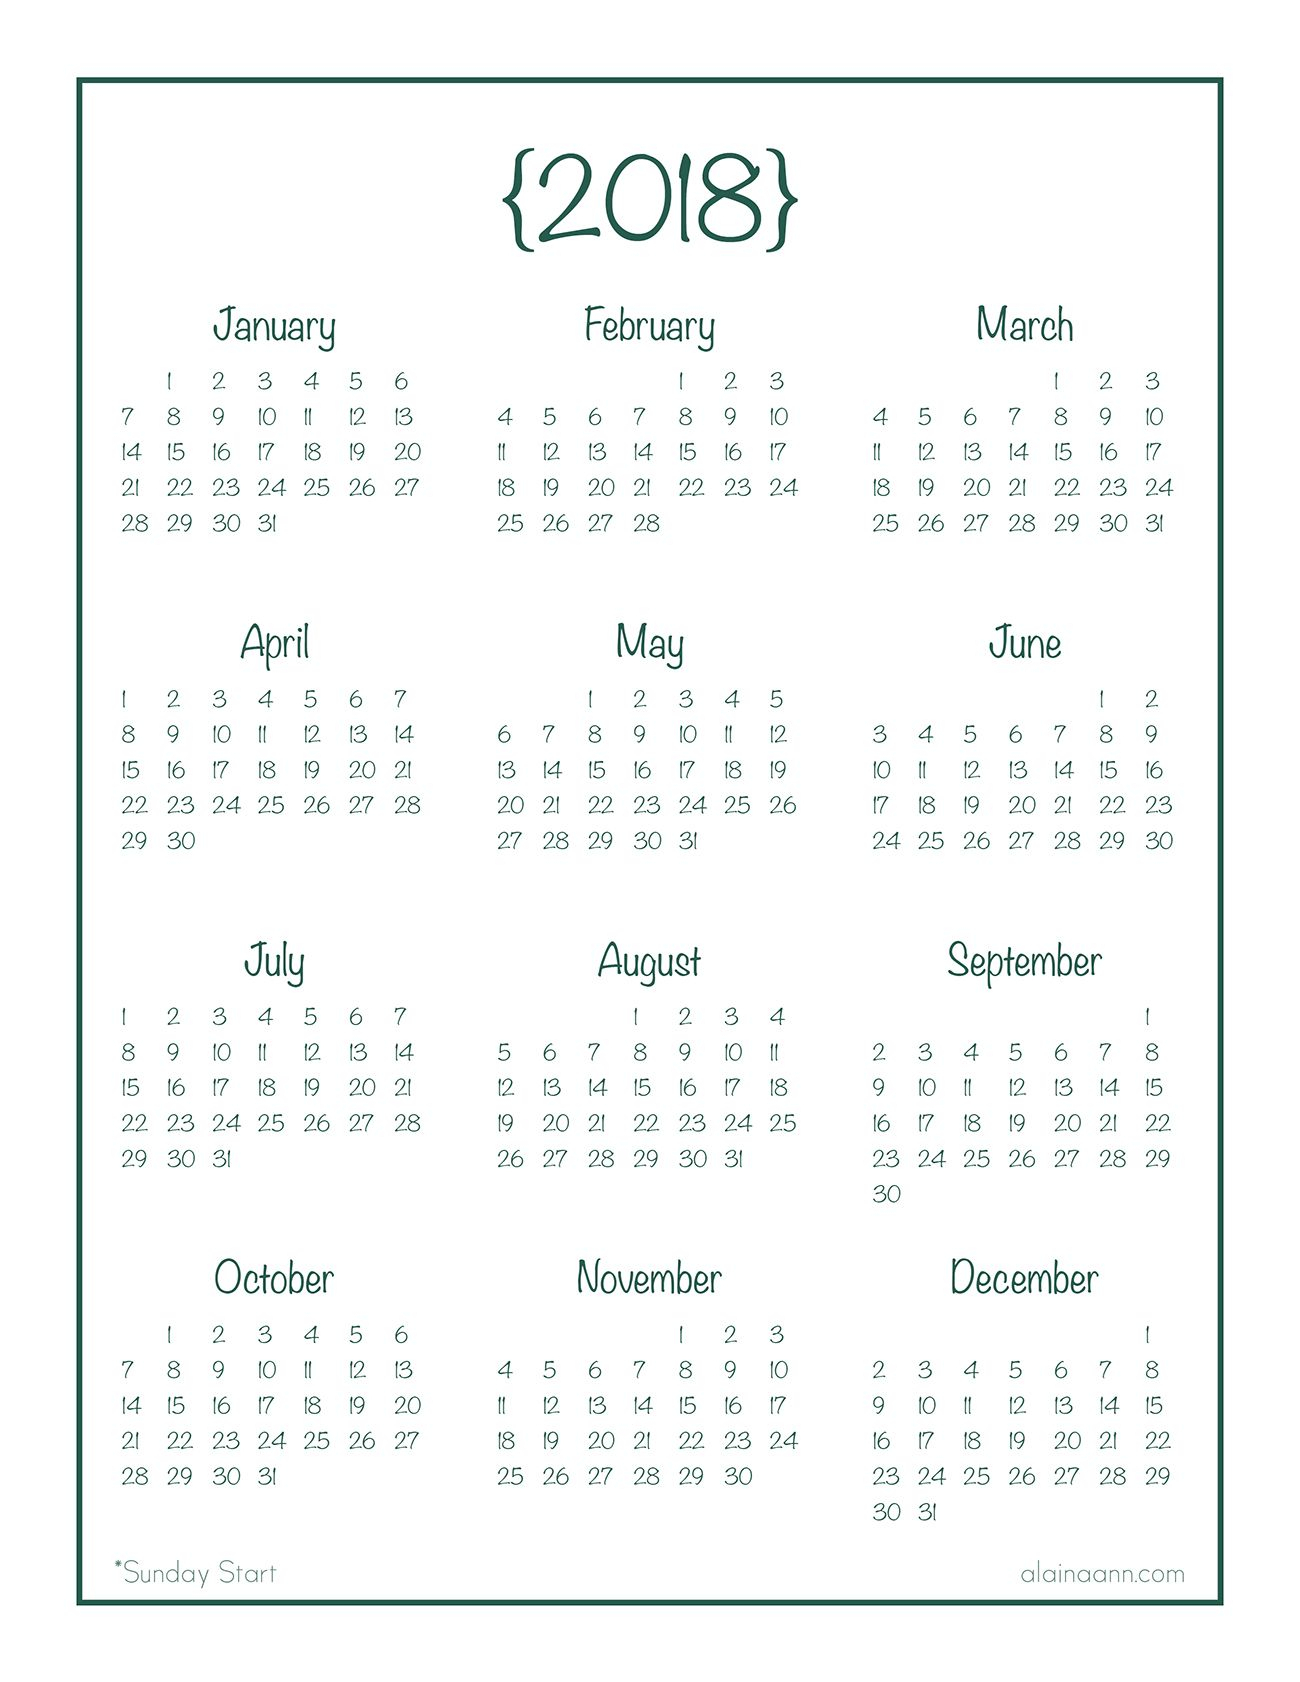 2018 Year-At-A-Glance Calendar {Free Printable} | Planner/journal inside Blank Year At A Glance Calendar Template